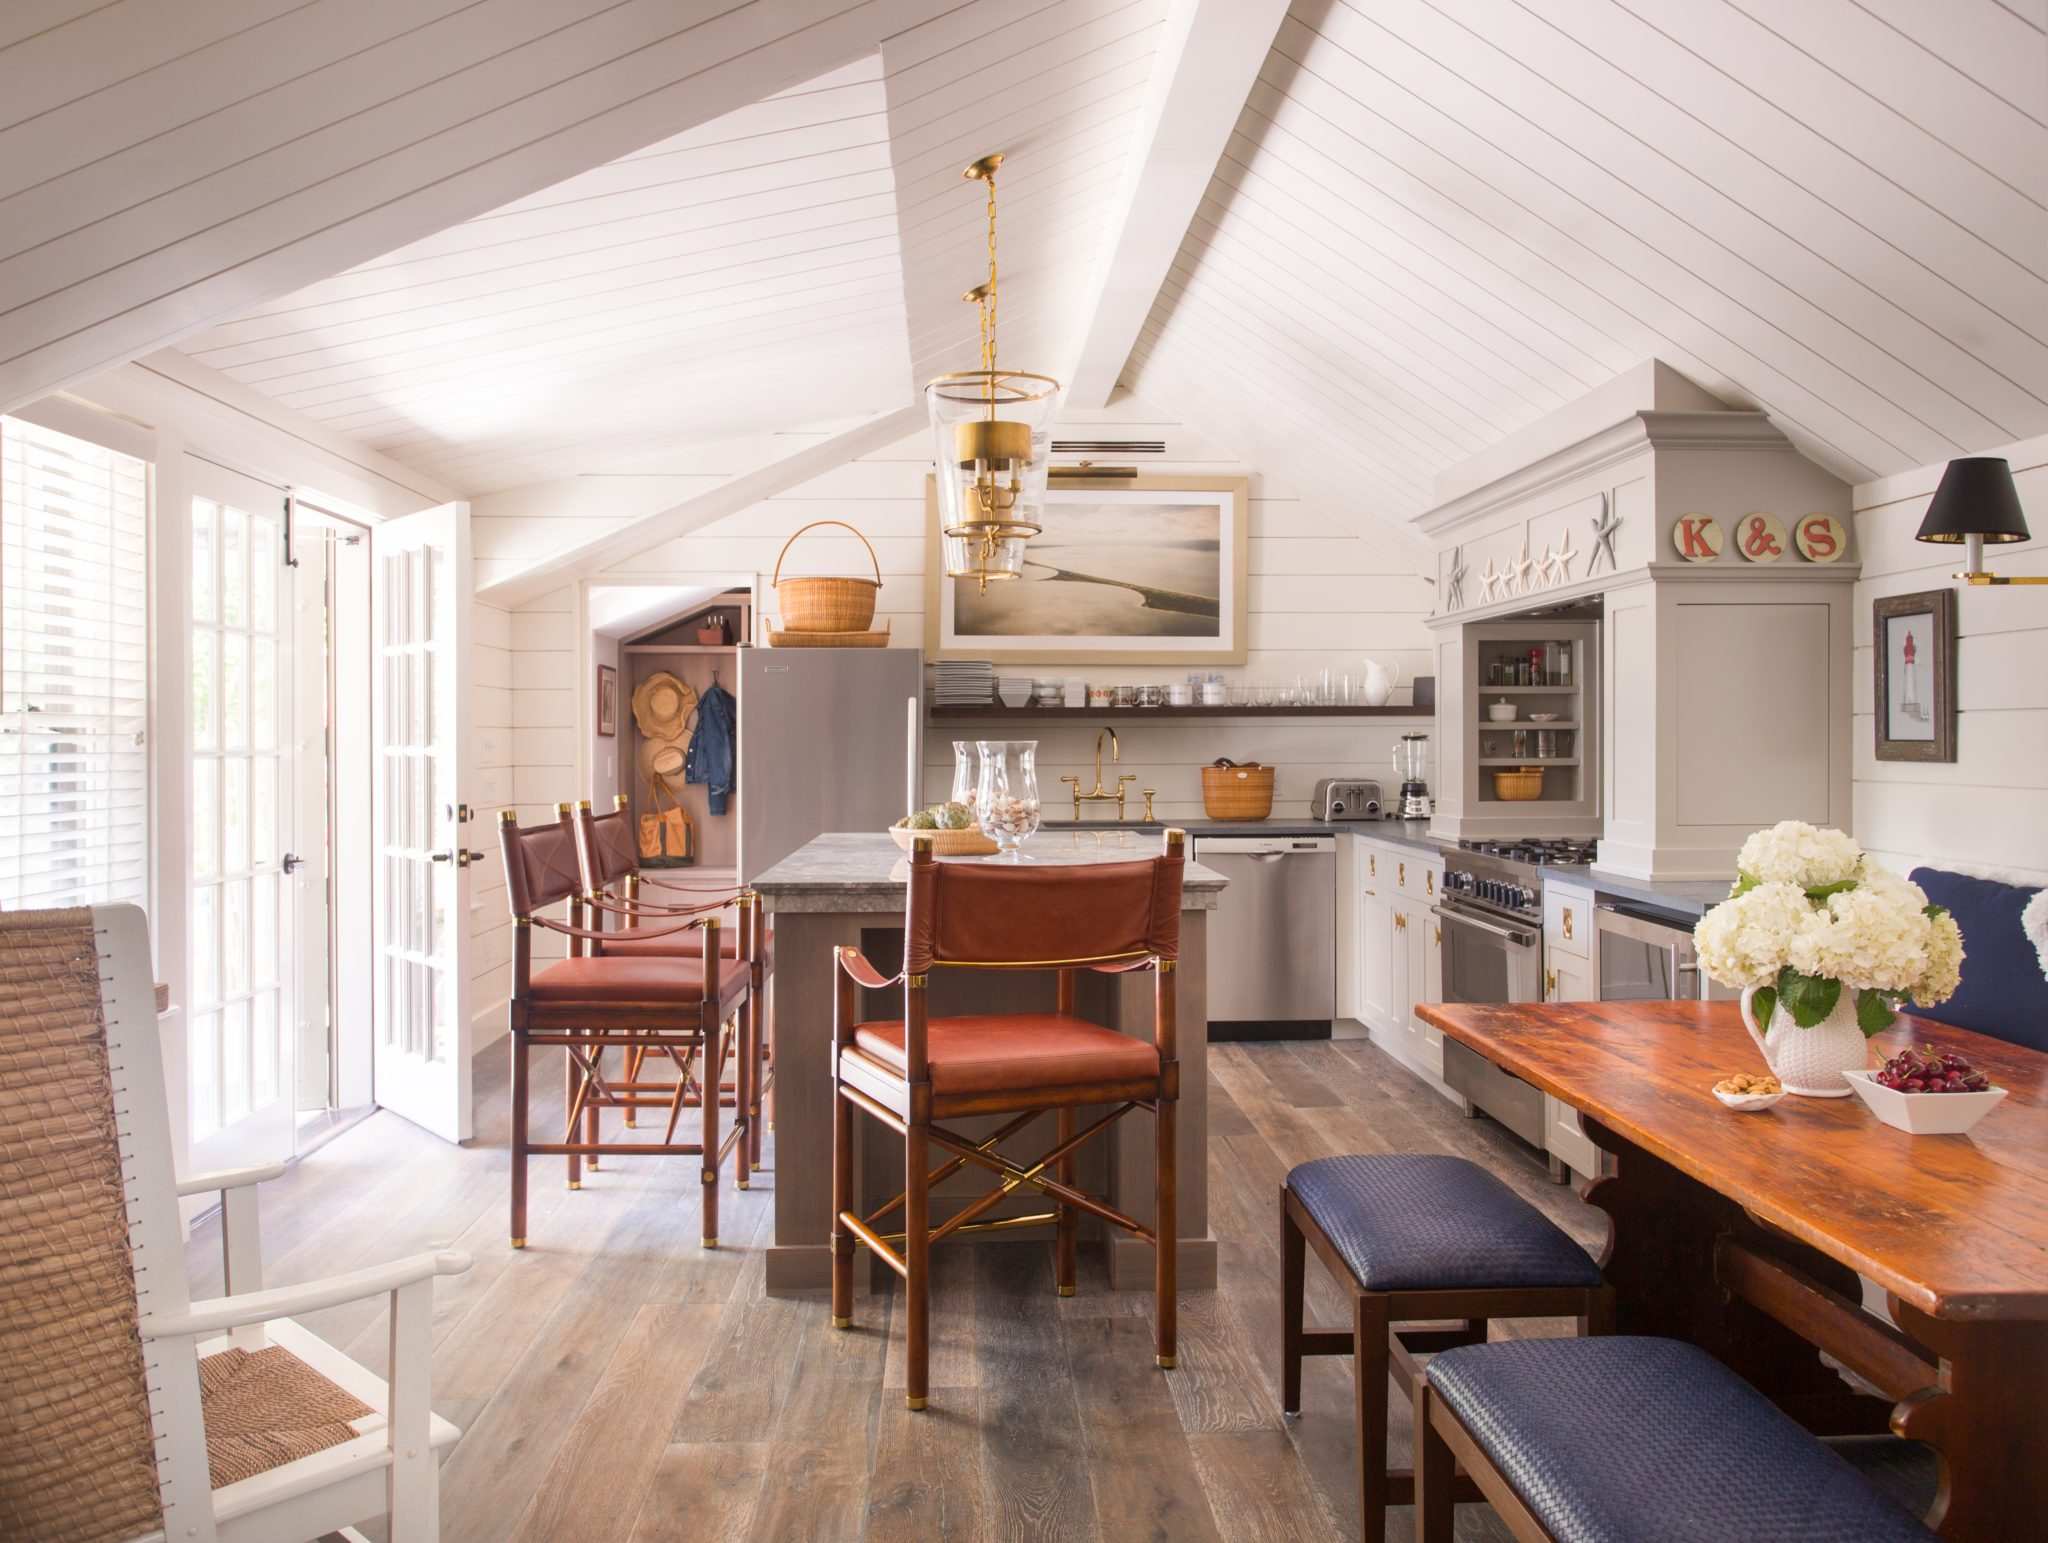 Classic Nantucket cottage kitchen by Kristin Paton Interiors